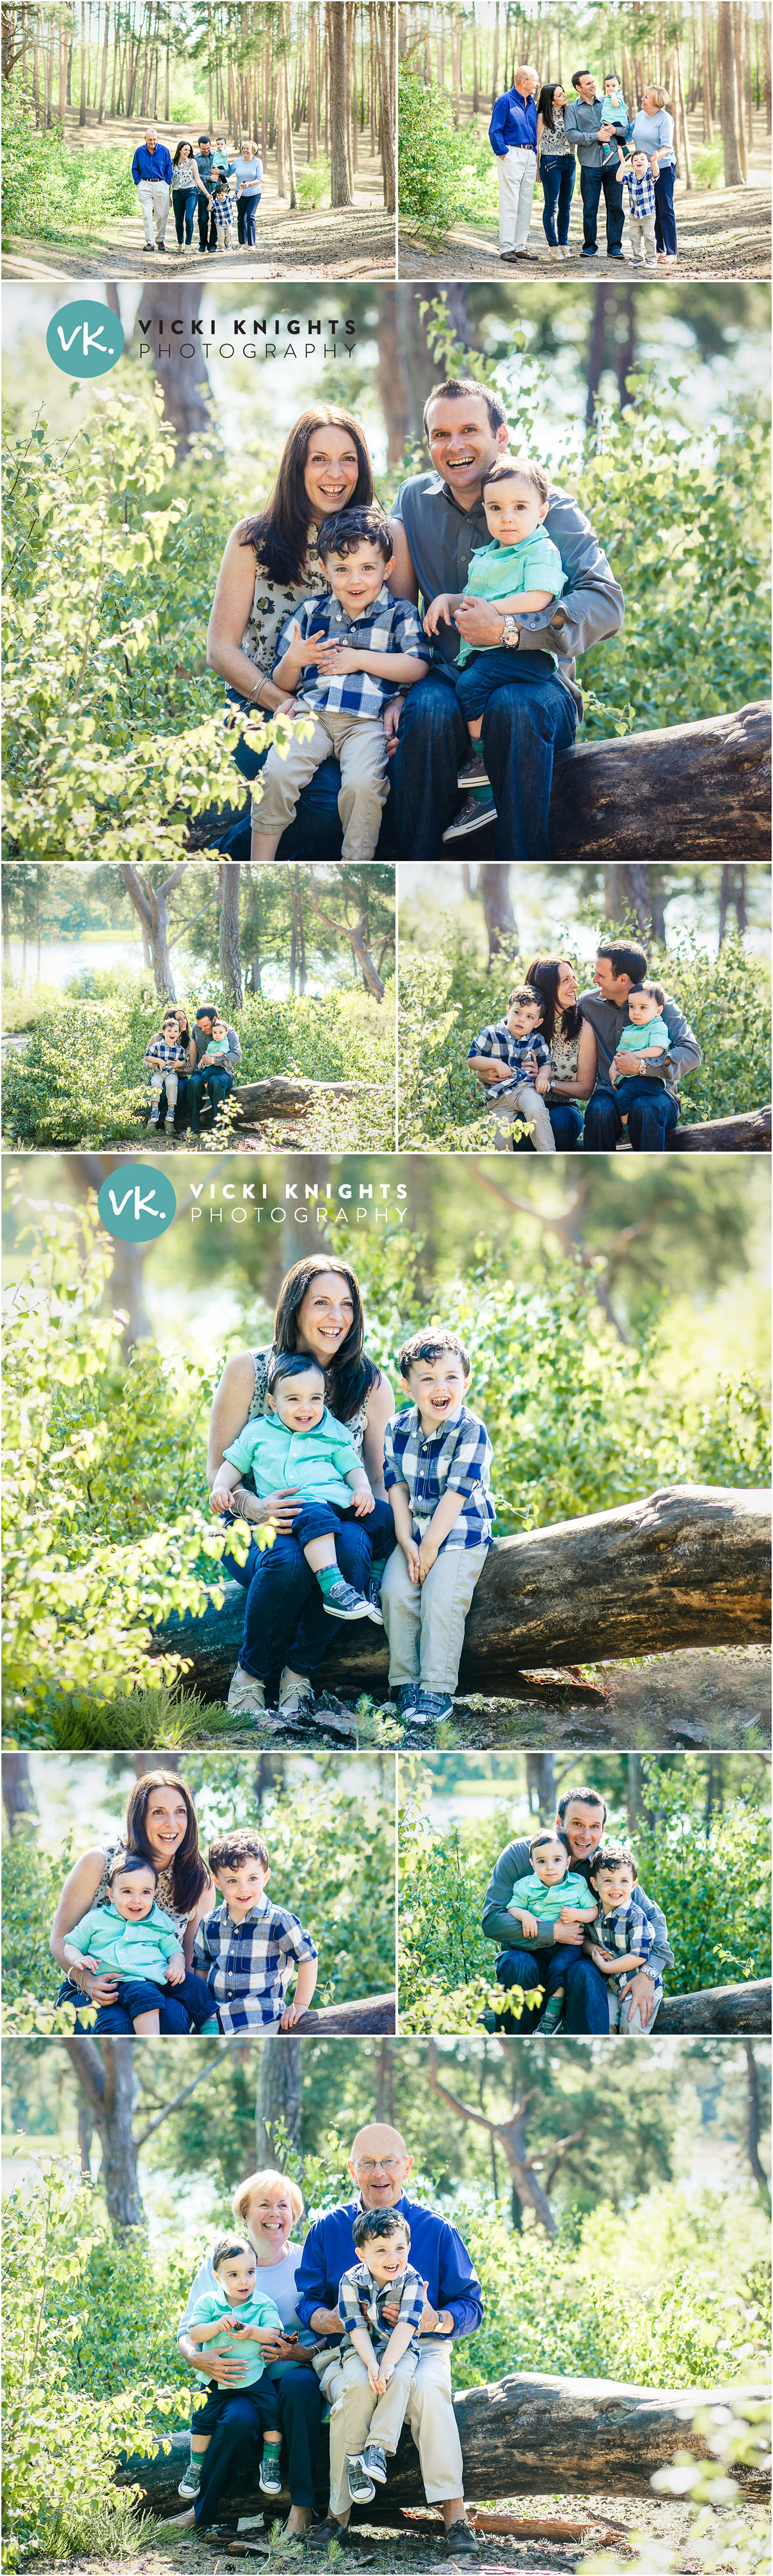 guildford-family-photographer-1